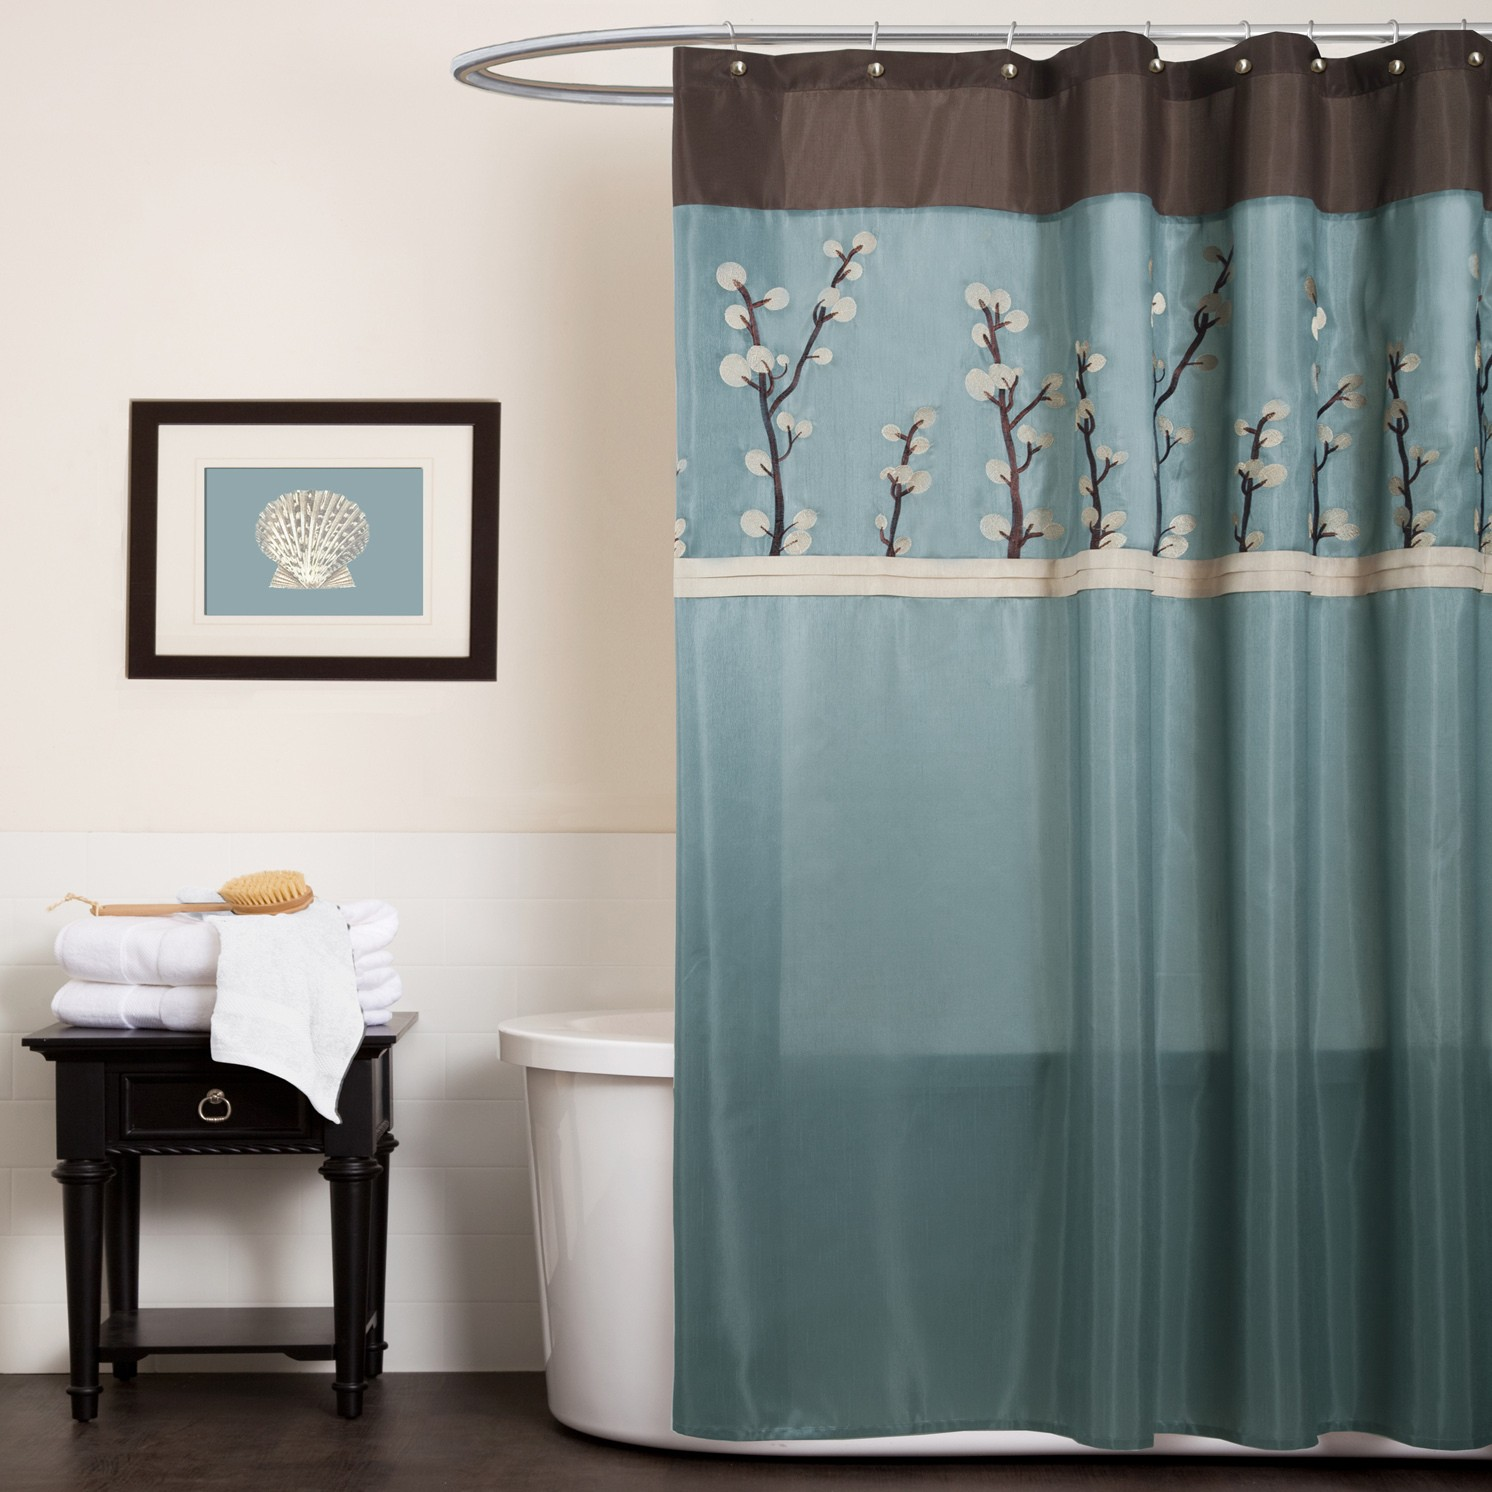 Shower Curtains Blue Beautiful Sweet Home Brown Shower Curtain Blue Shower Curtains Fabric Shower Curtains